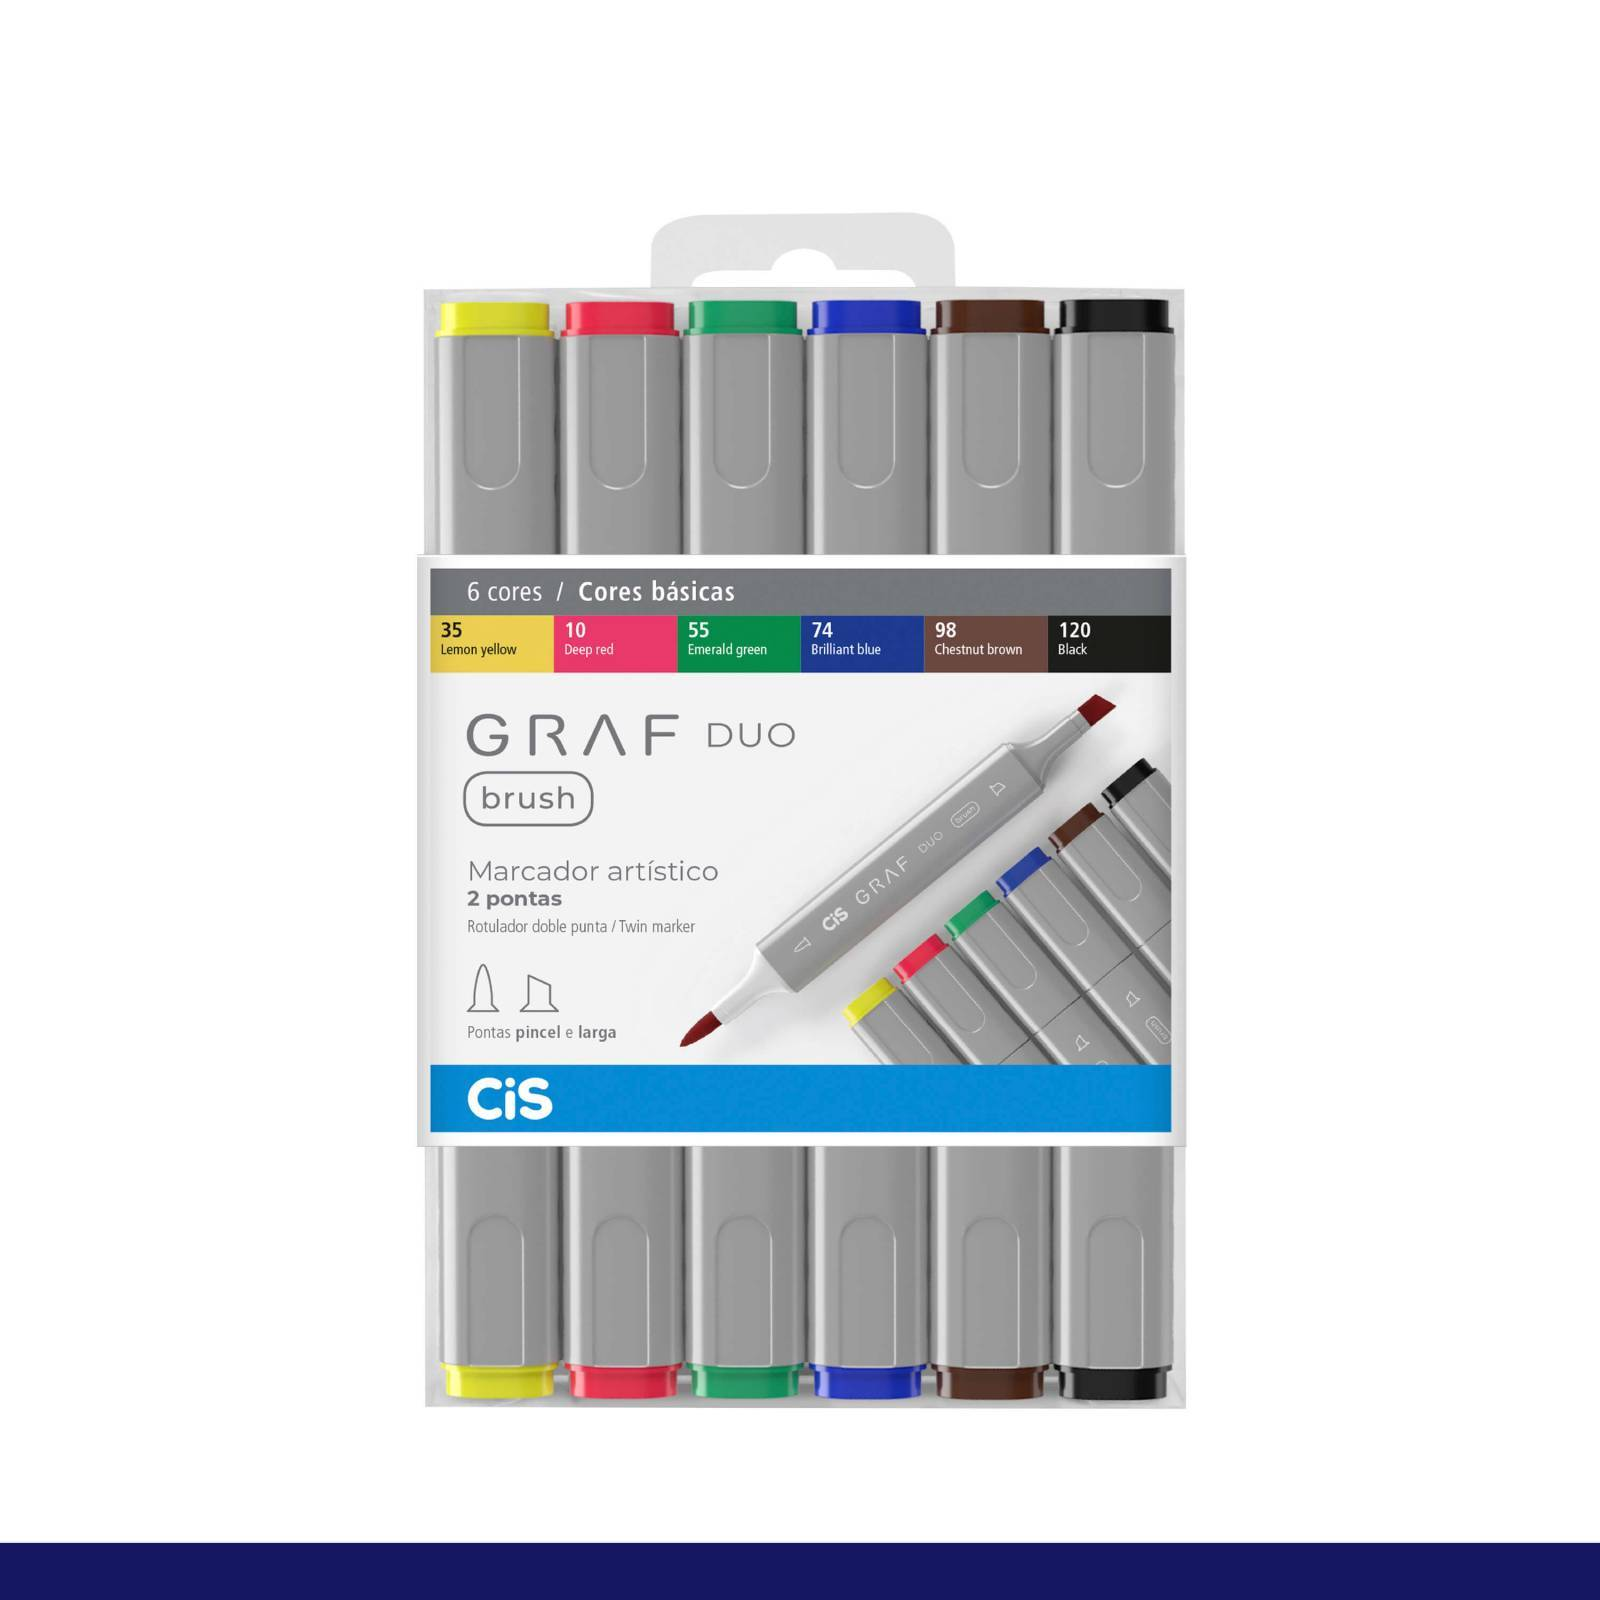 Kit Cis Graf Duo Brush Cores Basicas C/ 6 - Mundo Graffiti